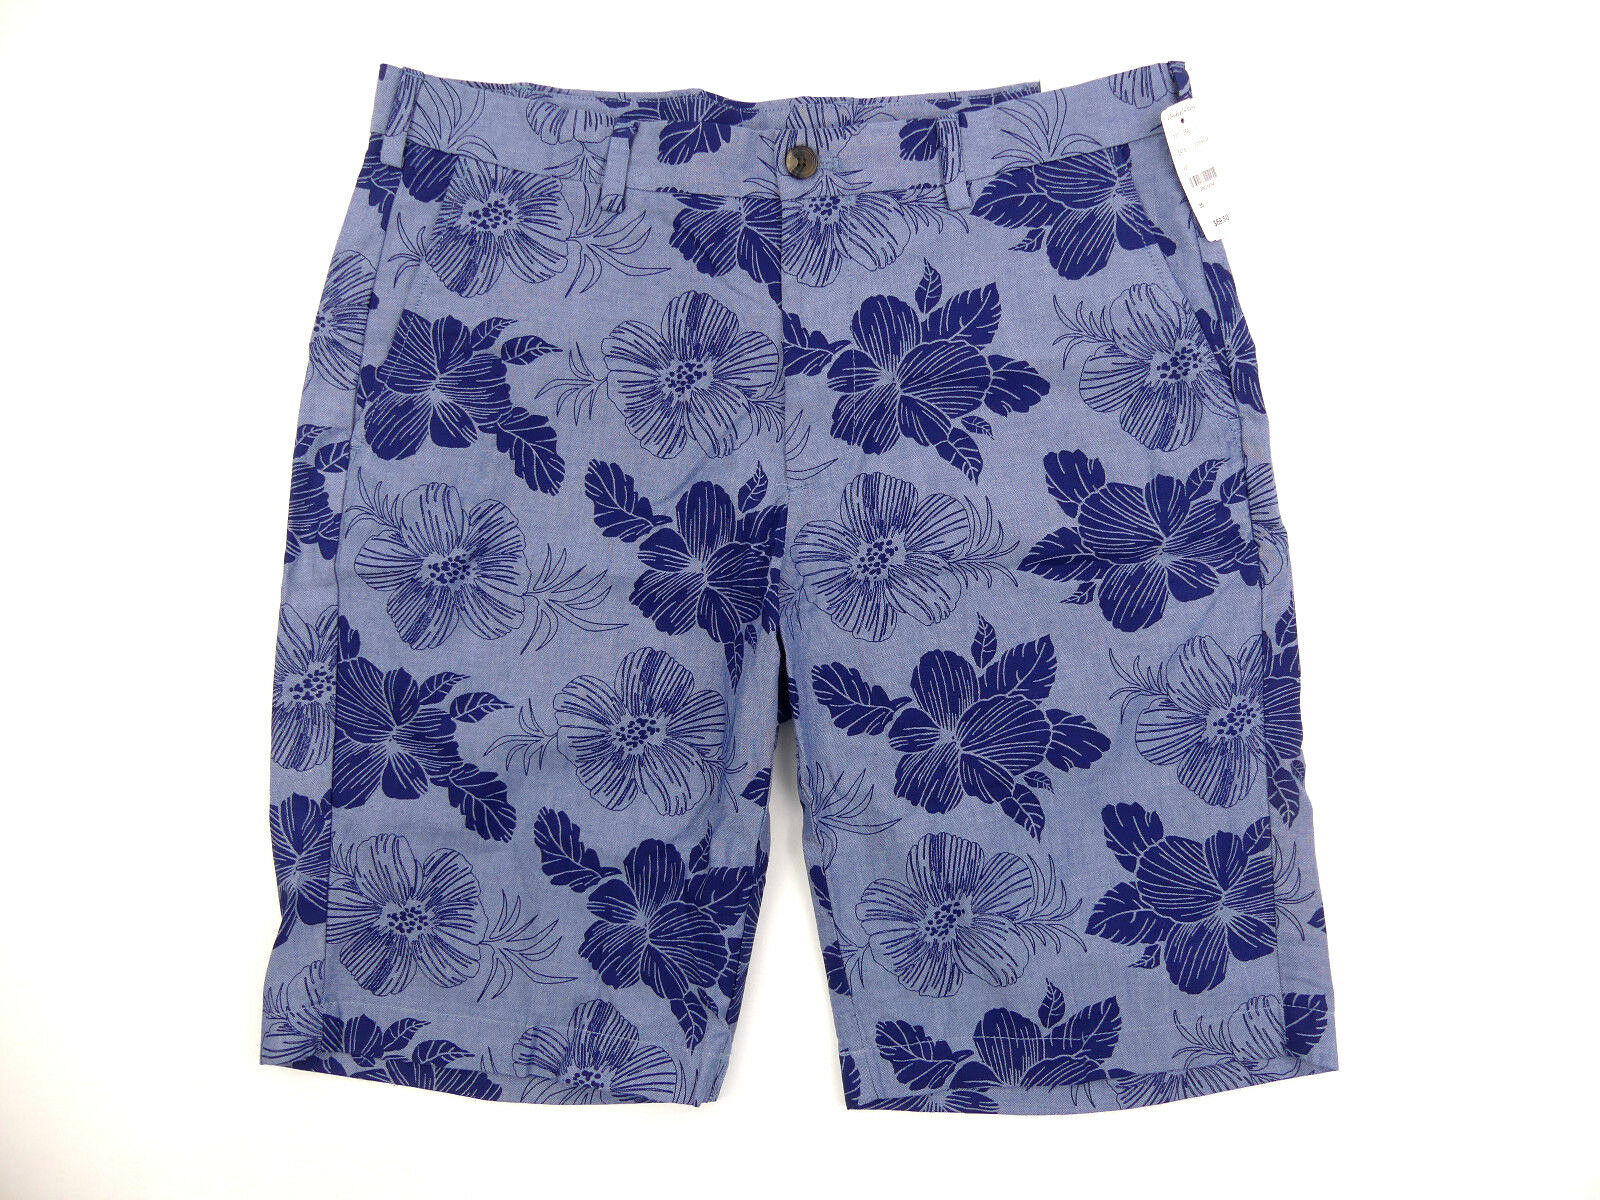 Brooks Bredhers Mens Shorts Size 35 bluee Hawaiian Floral Pattern 08A08